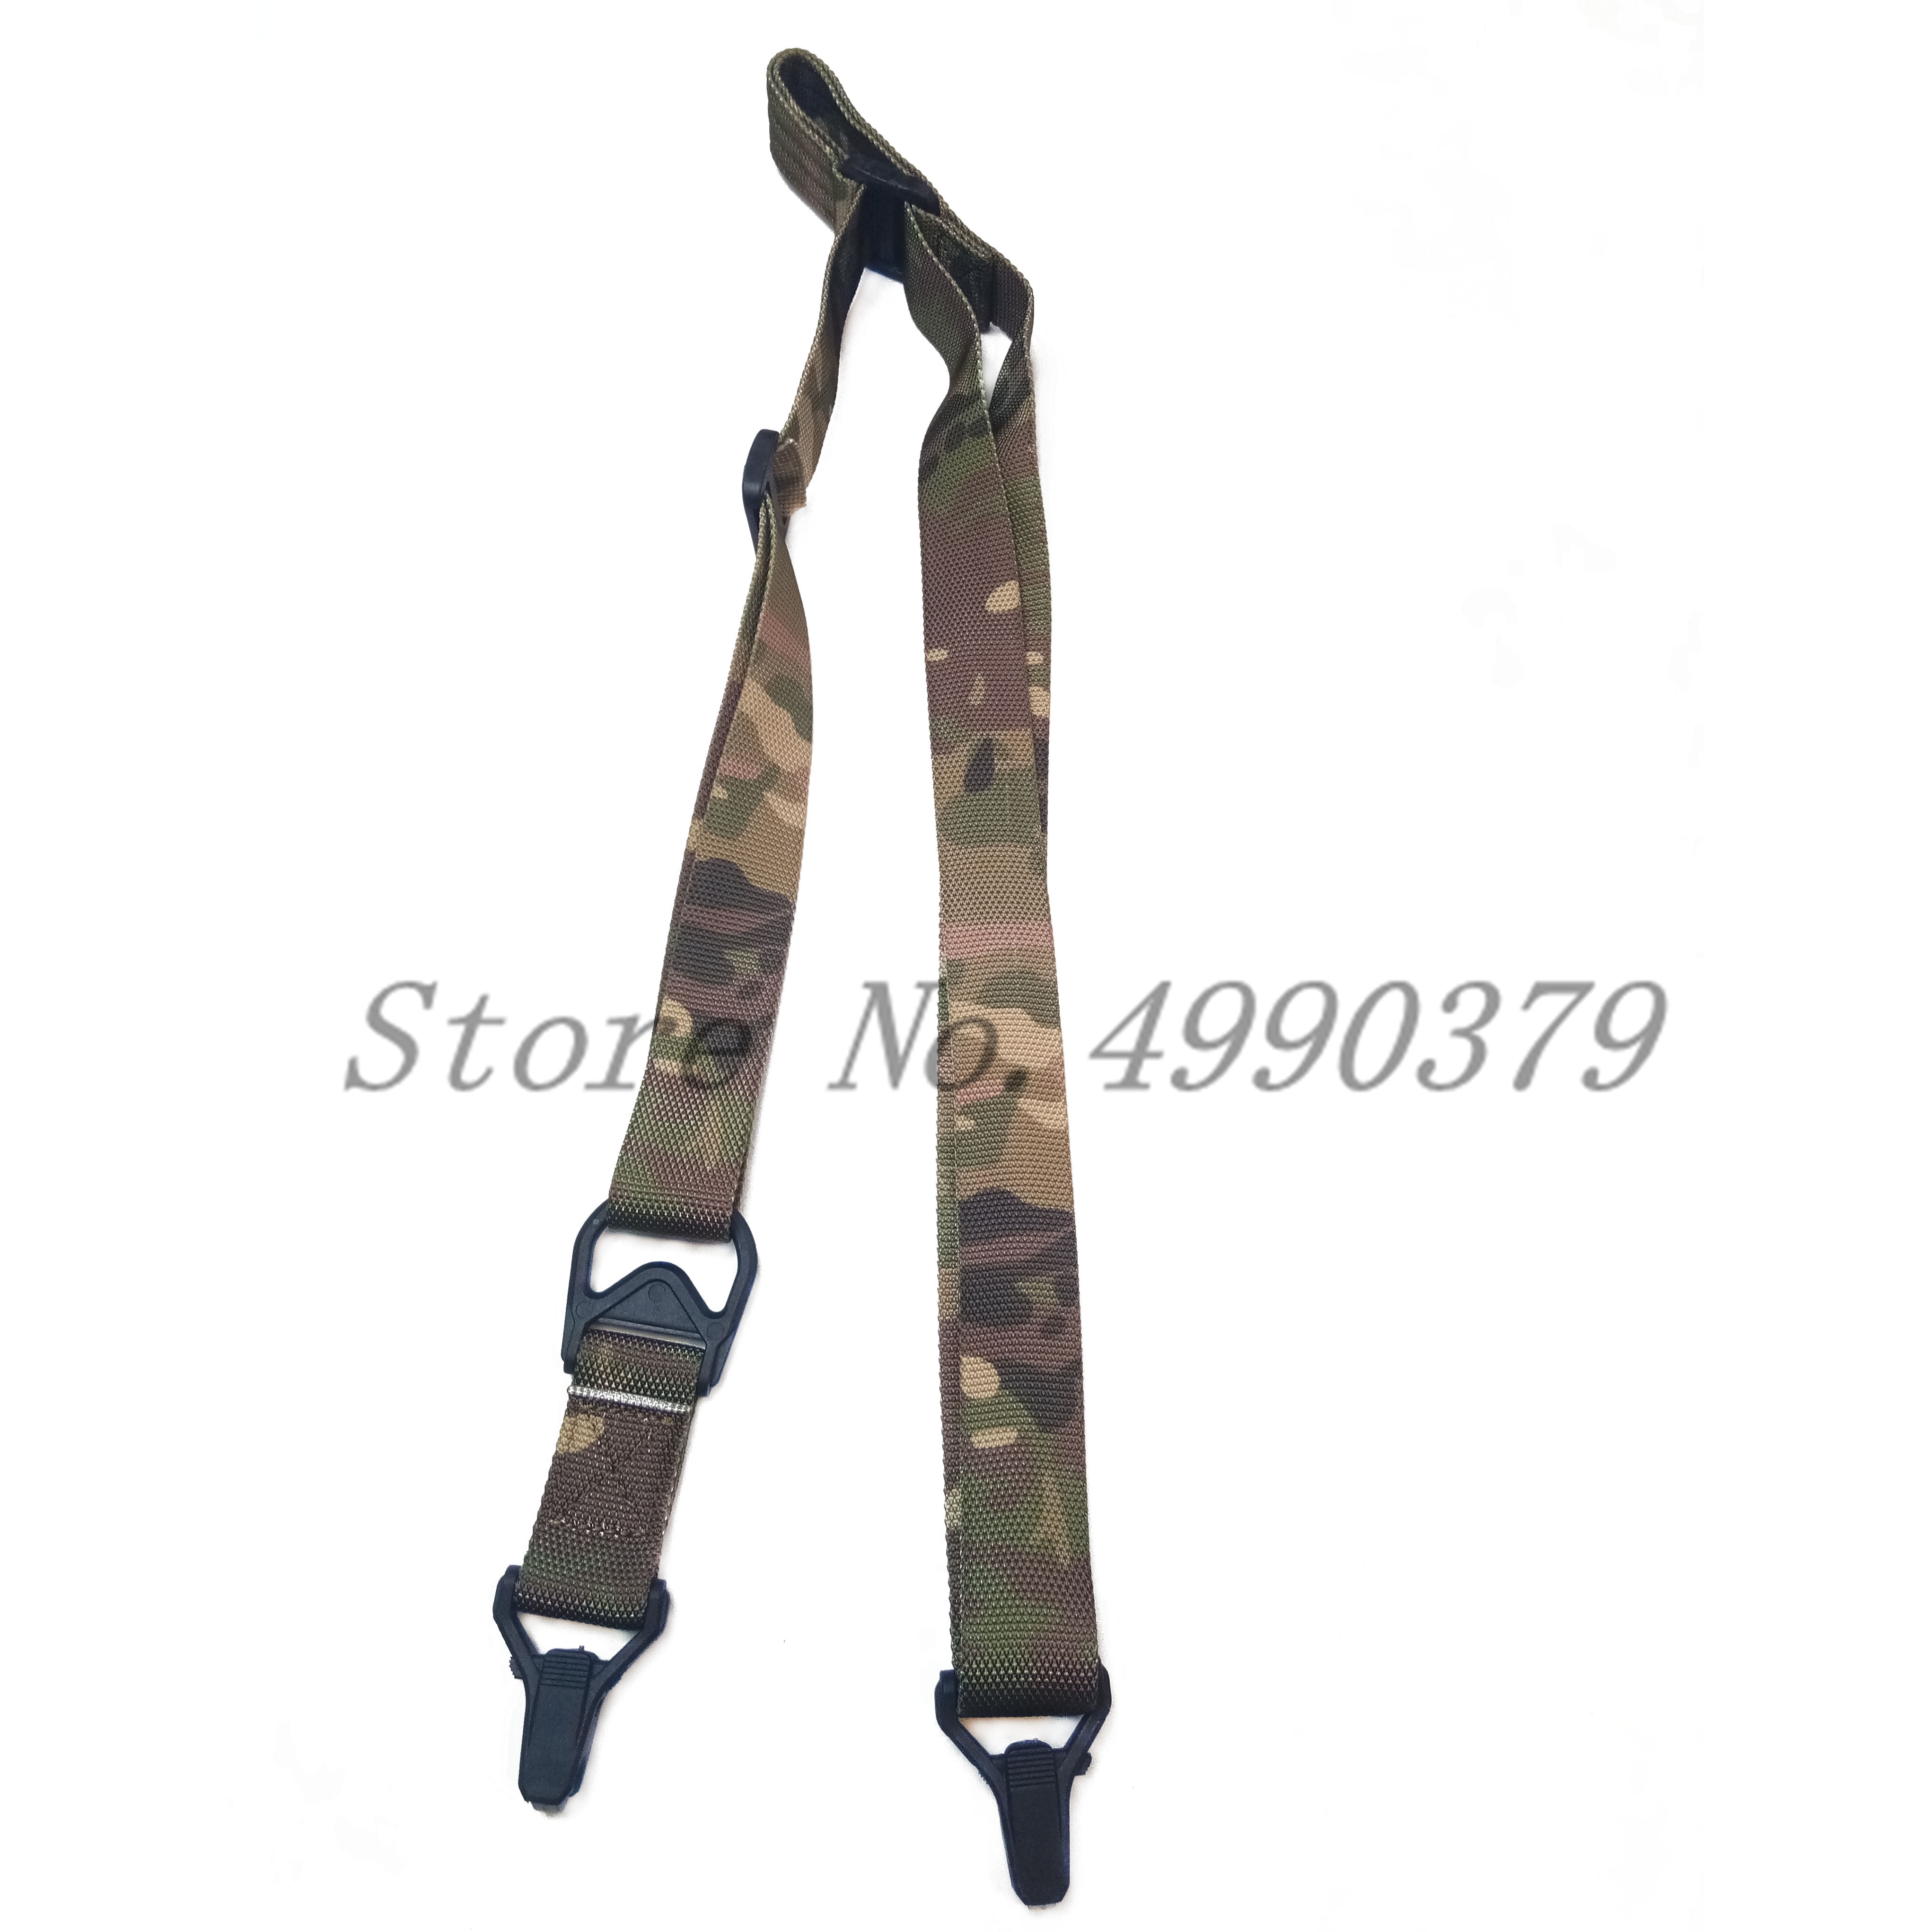 Image 4 - HANWILD  MS3 Tactical Sling Multi Mission Rifles Carry Sling Adjustable Length Shoulder Straps Wholesale-in Hunting Gun Accessories from Sports & Entertainment